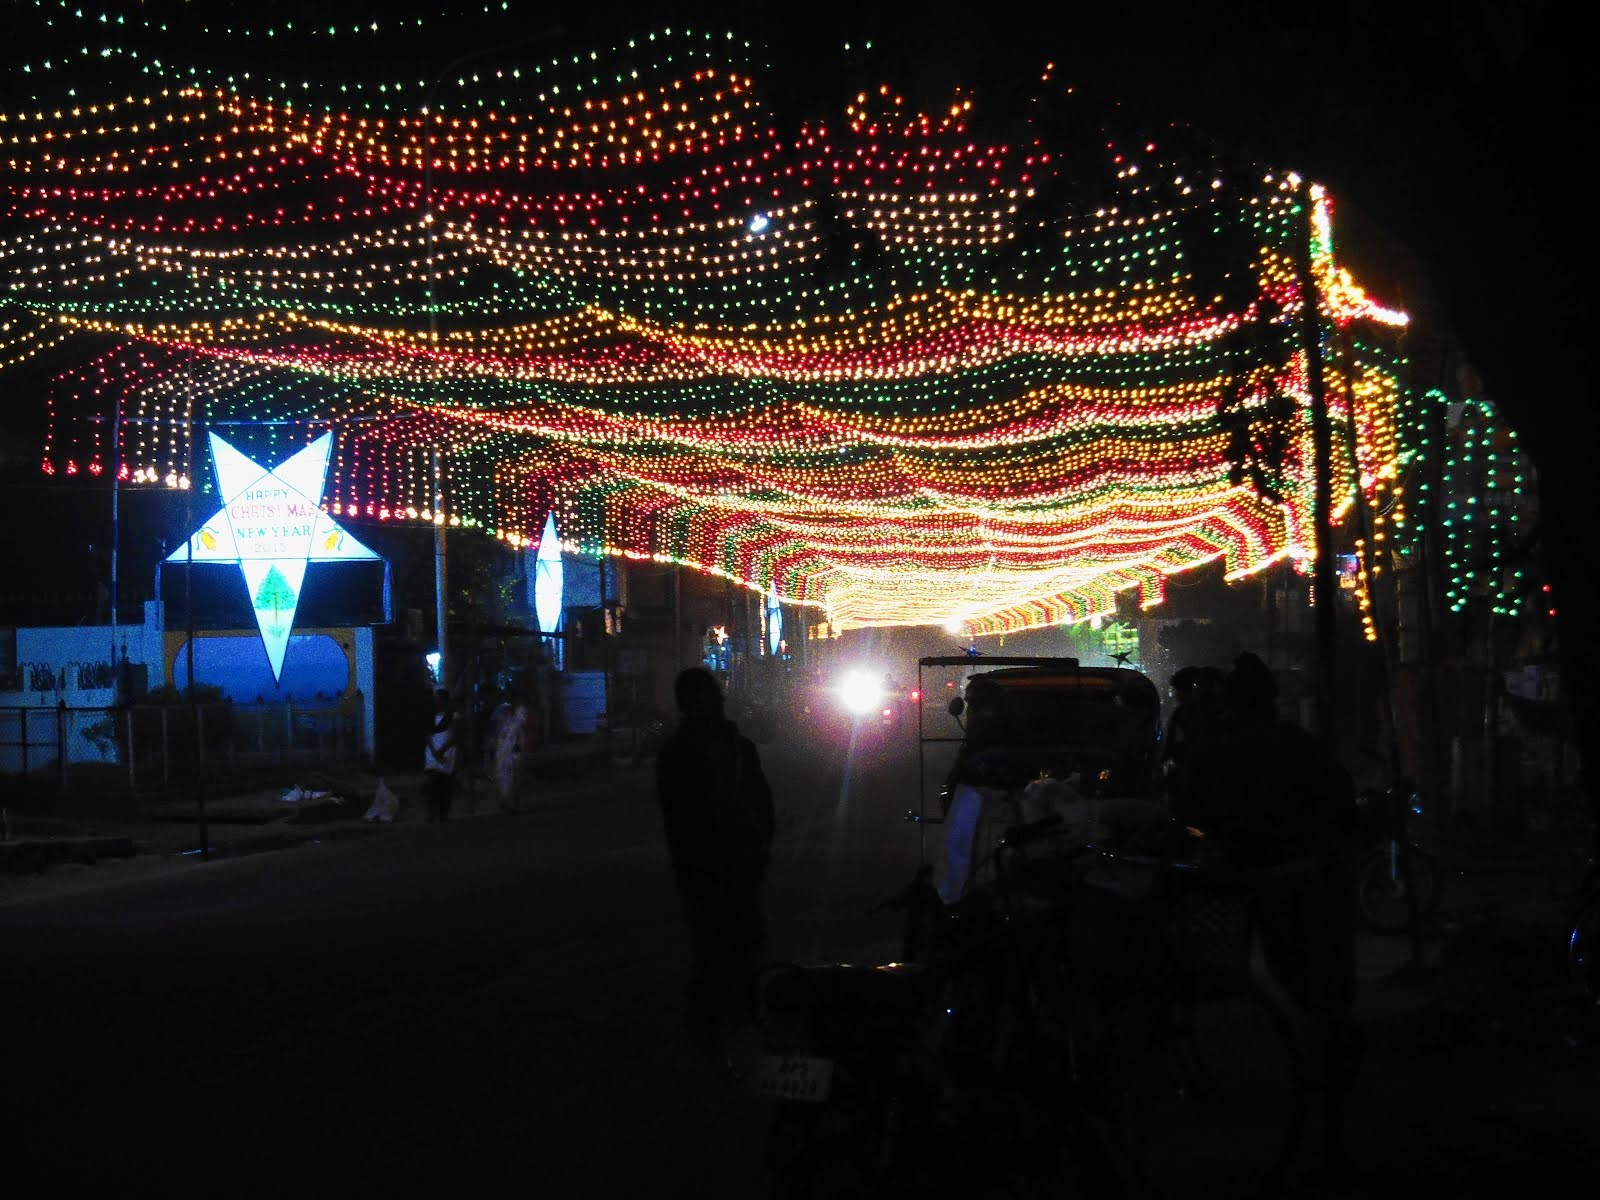 Christmas in Rajamundry